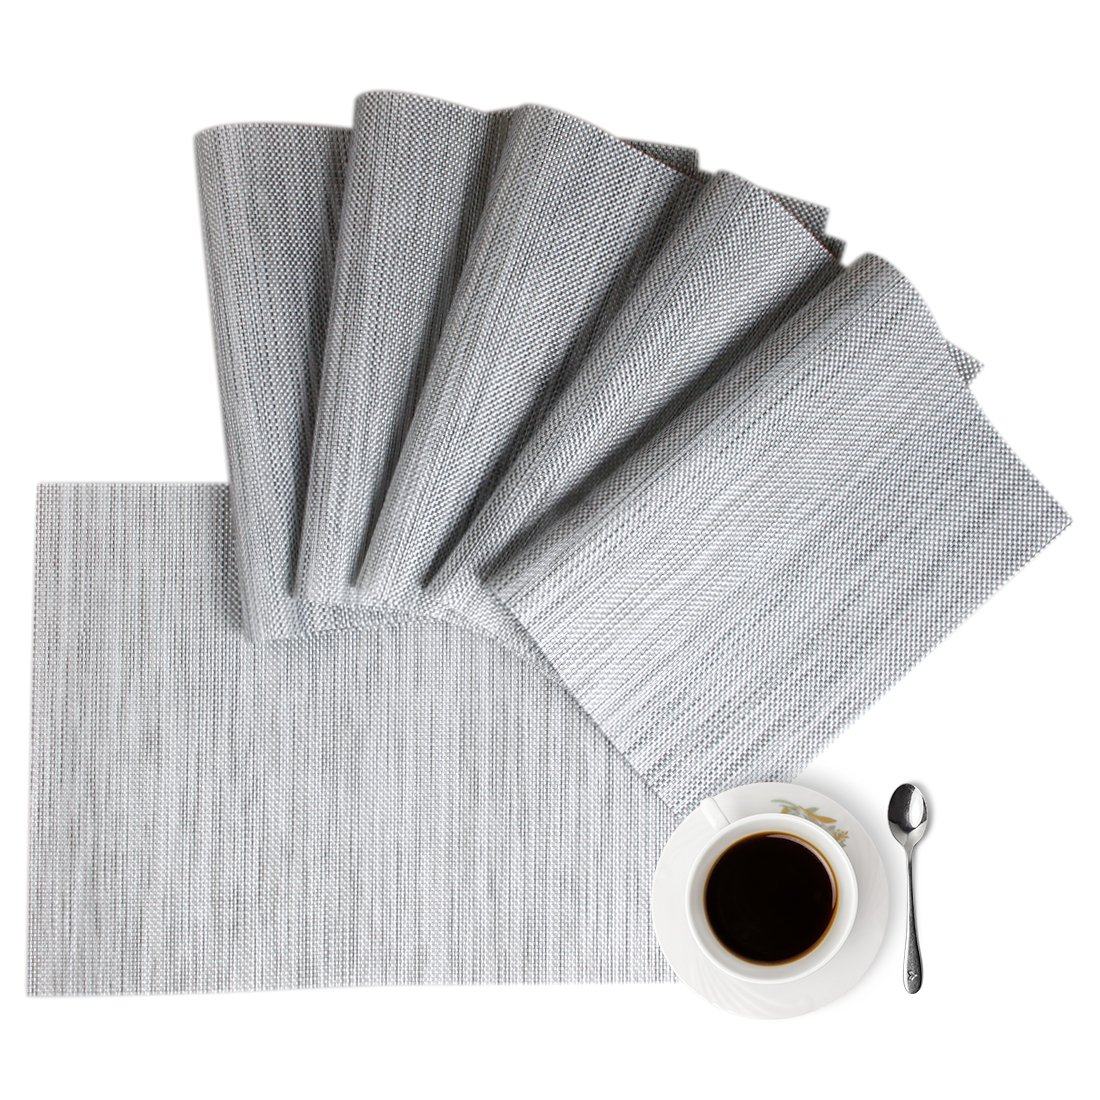 Placemats,Table Mats,Placemat Set of 8 Non-Slip Washable Place Mats,Heat Resistant Kitchen Tablemats for Dining Table (Gray)